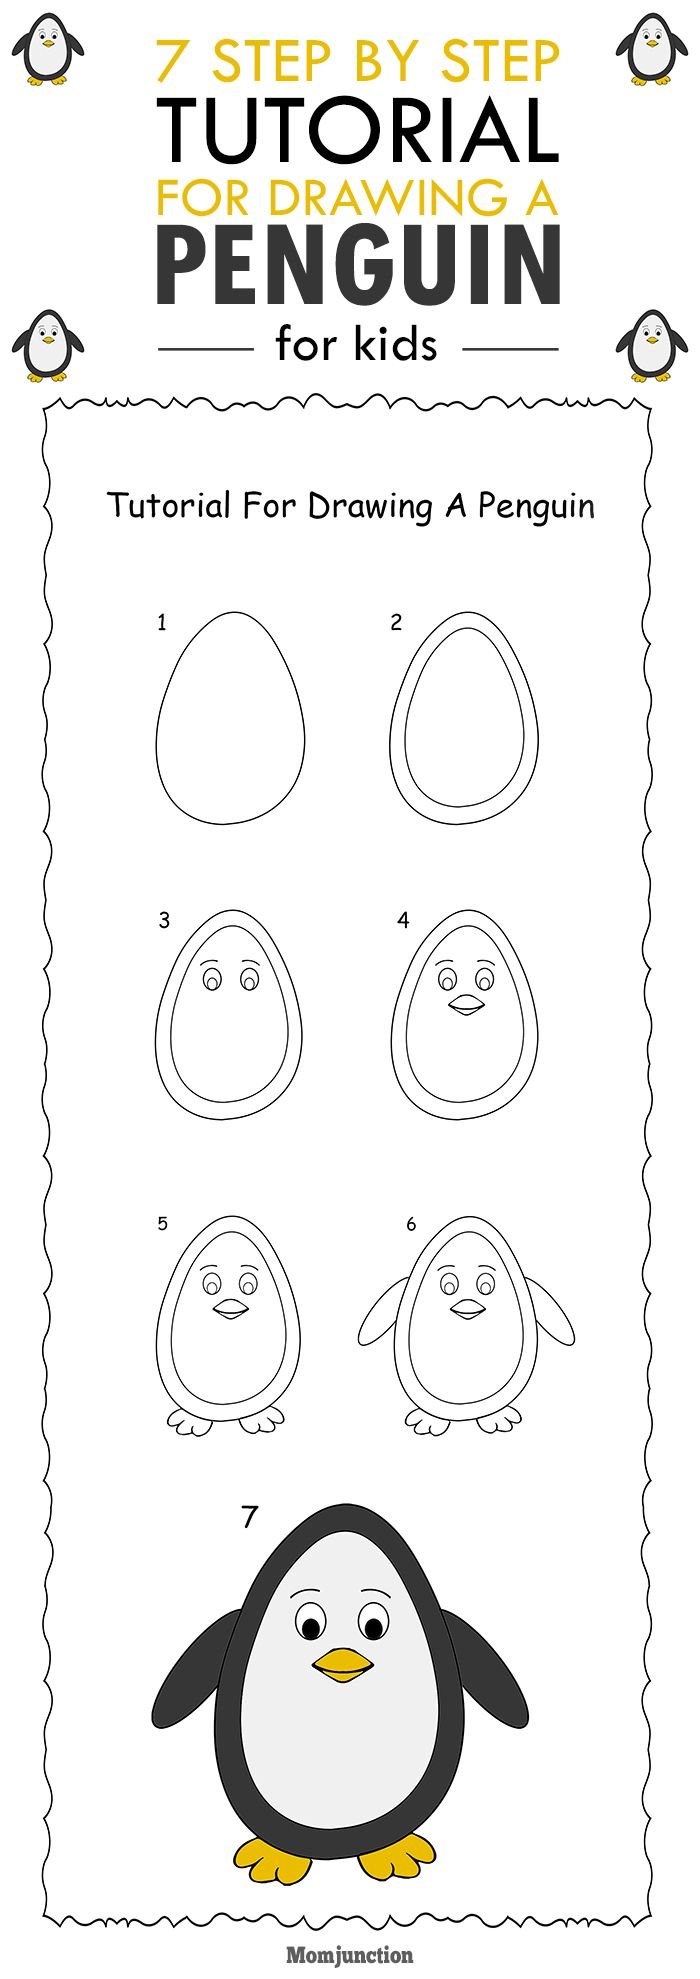 How To Draw A Penguin Step By Step - Easy Tutorial For ...